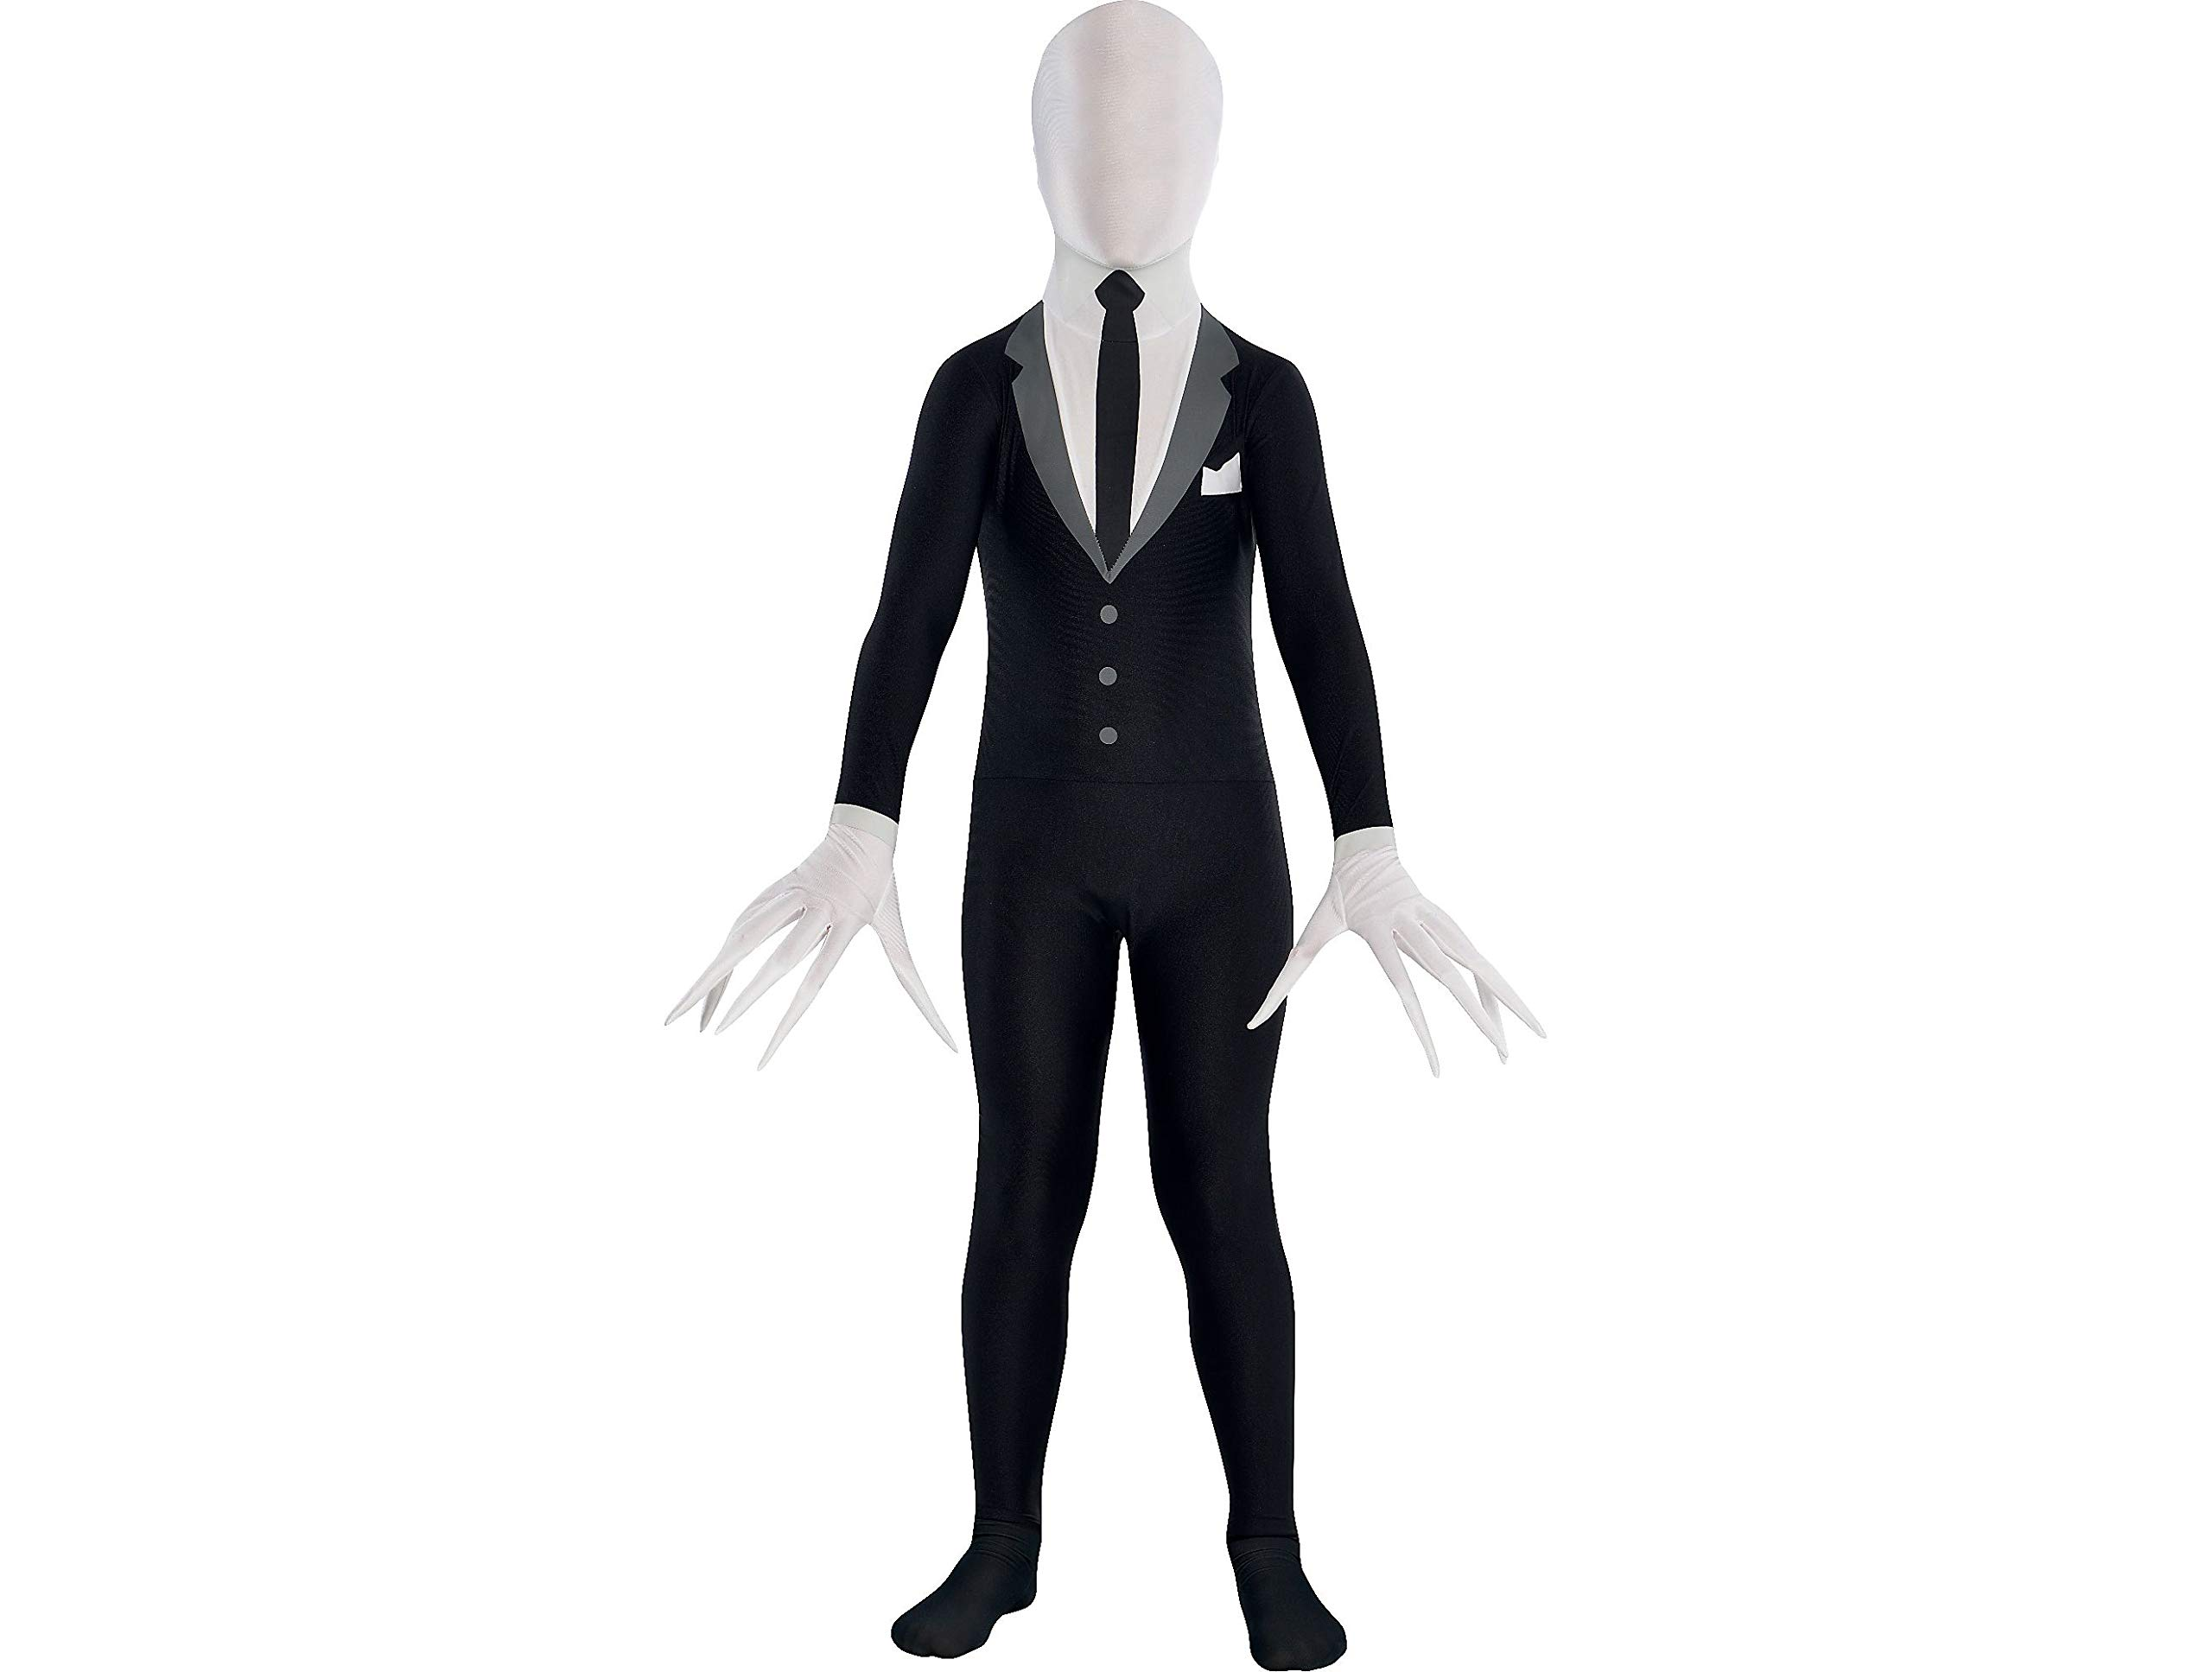 Party City Slender Man Partysuit Halloween Costume for Teens, Small, with Double Zipper